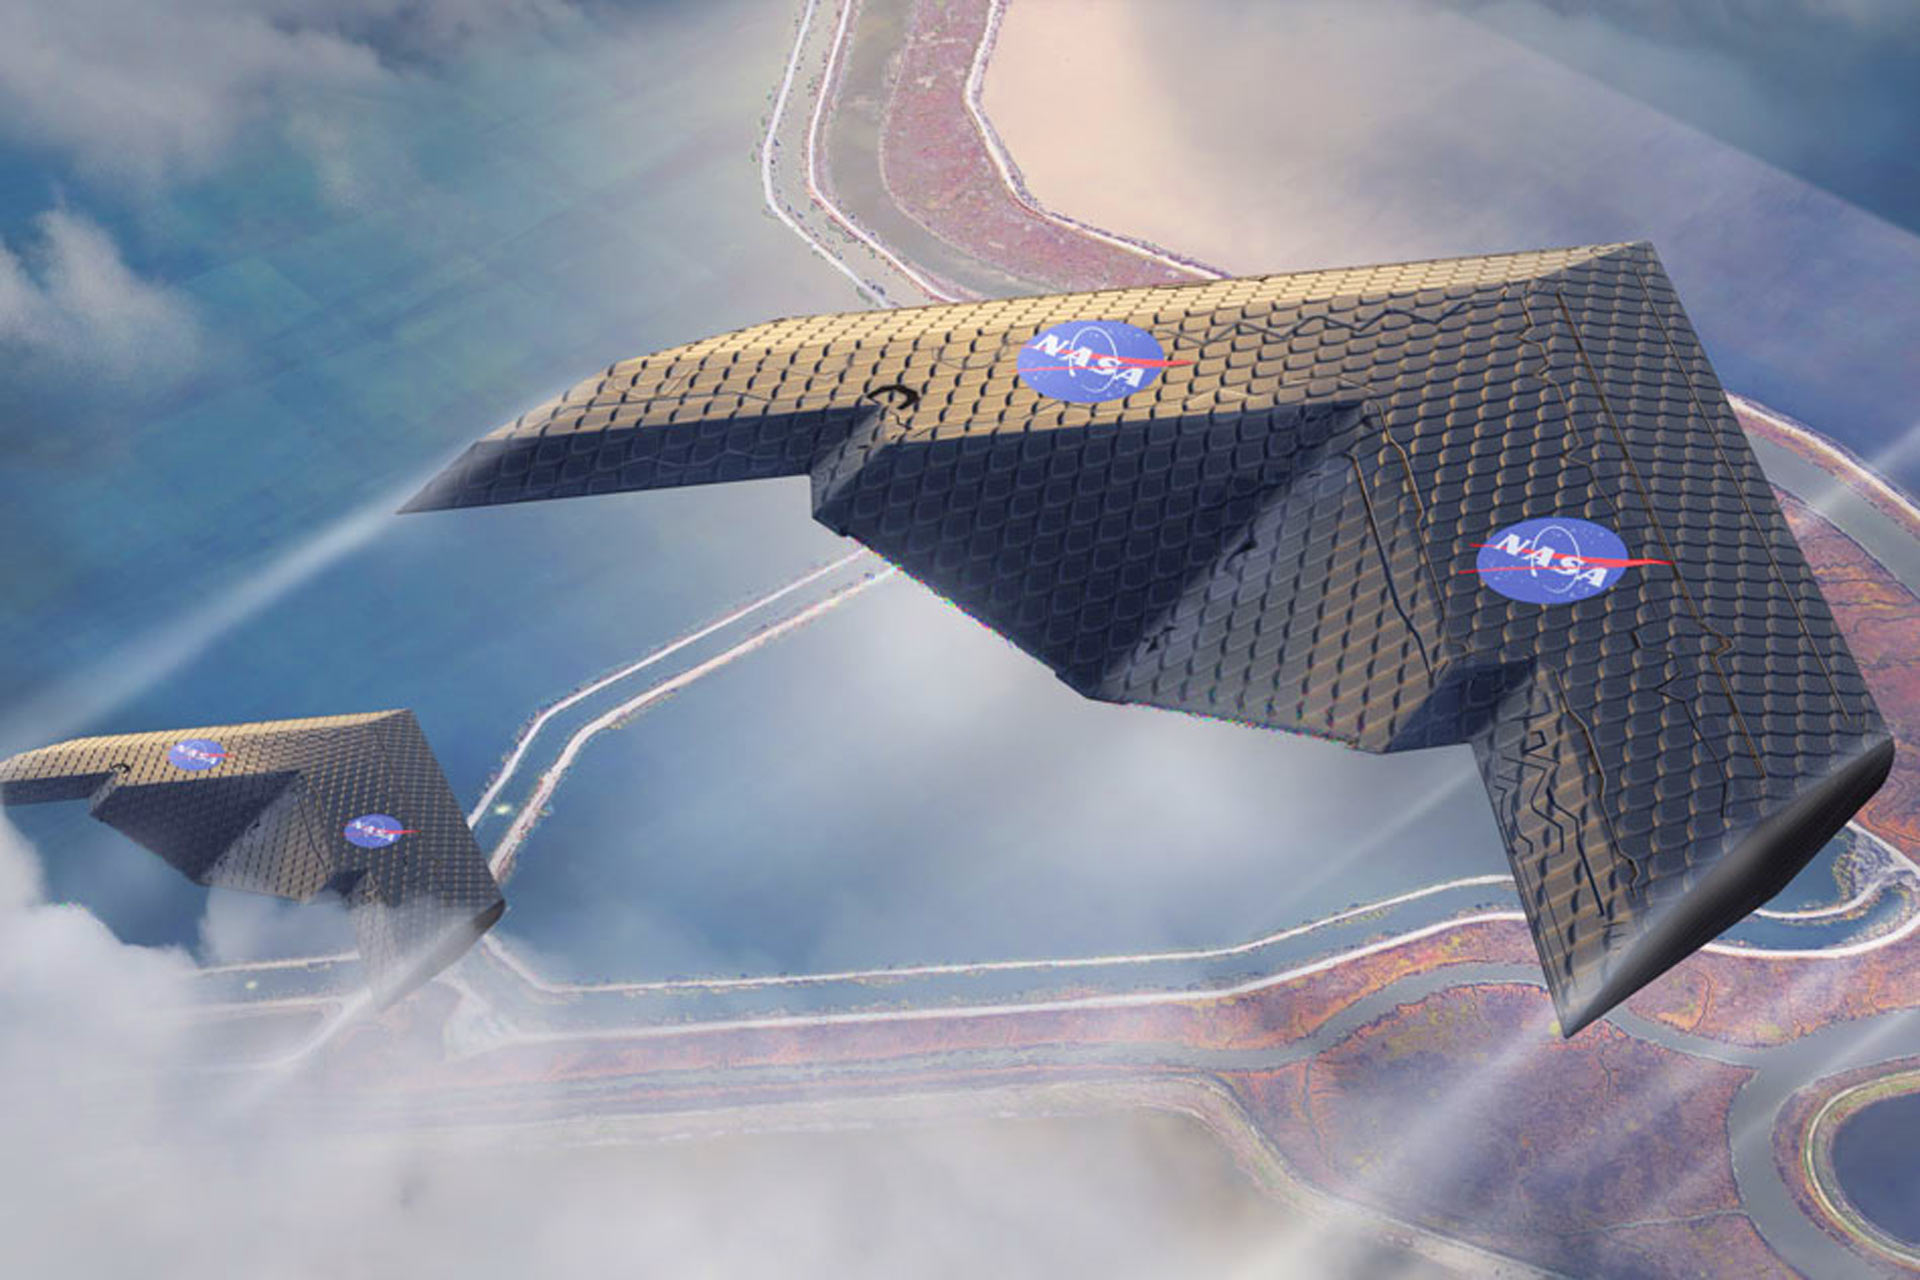 NASA, MIT test wild shape-shifting airplane wing